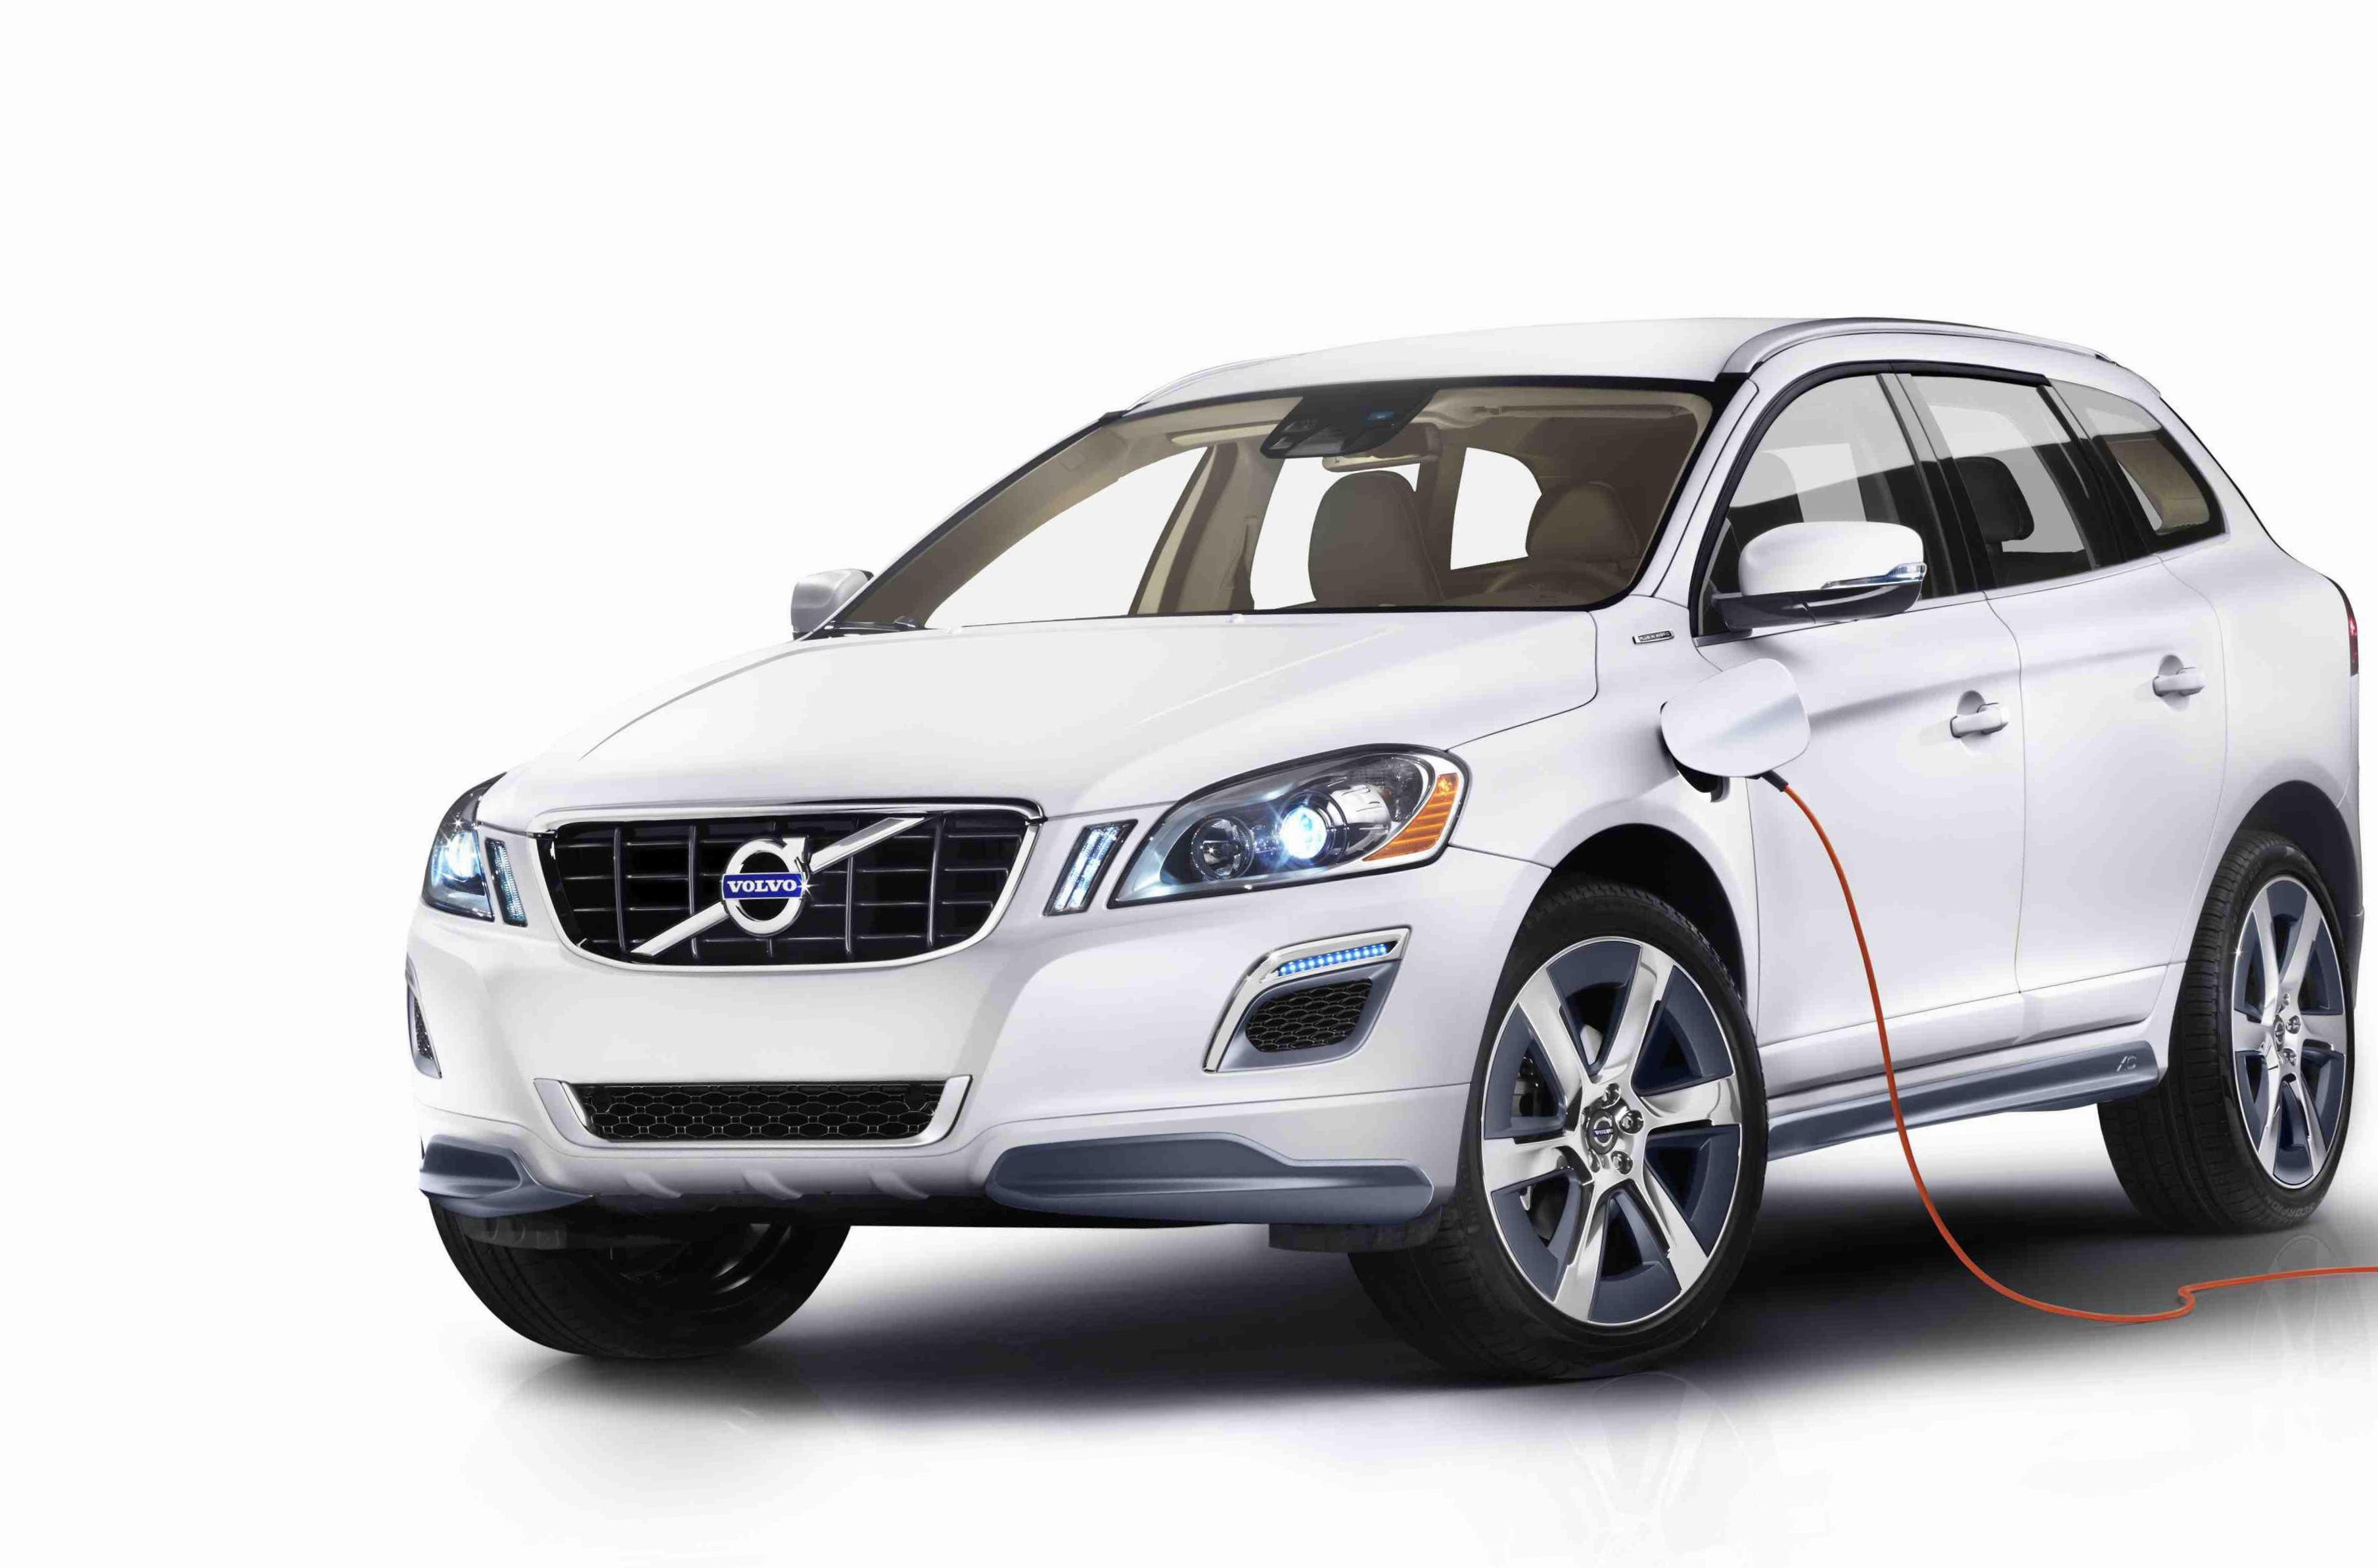 XC60 Volvo how mach 2010